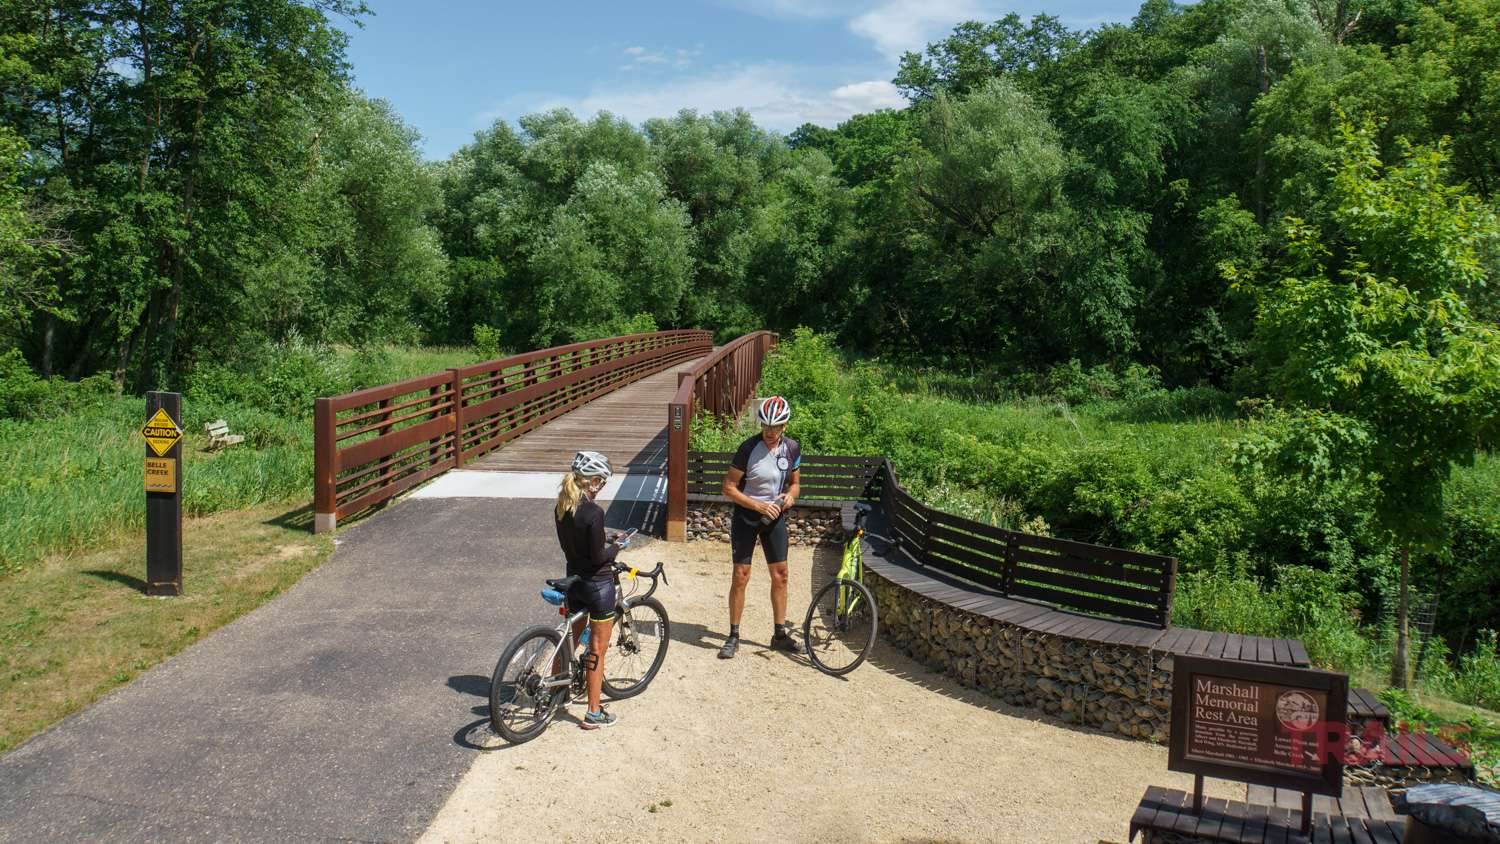 Two bicyclists are taking a break at a rest stop in an open area lined by trees along a bike trail